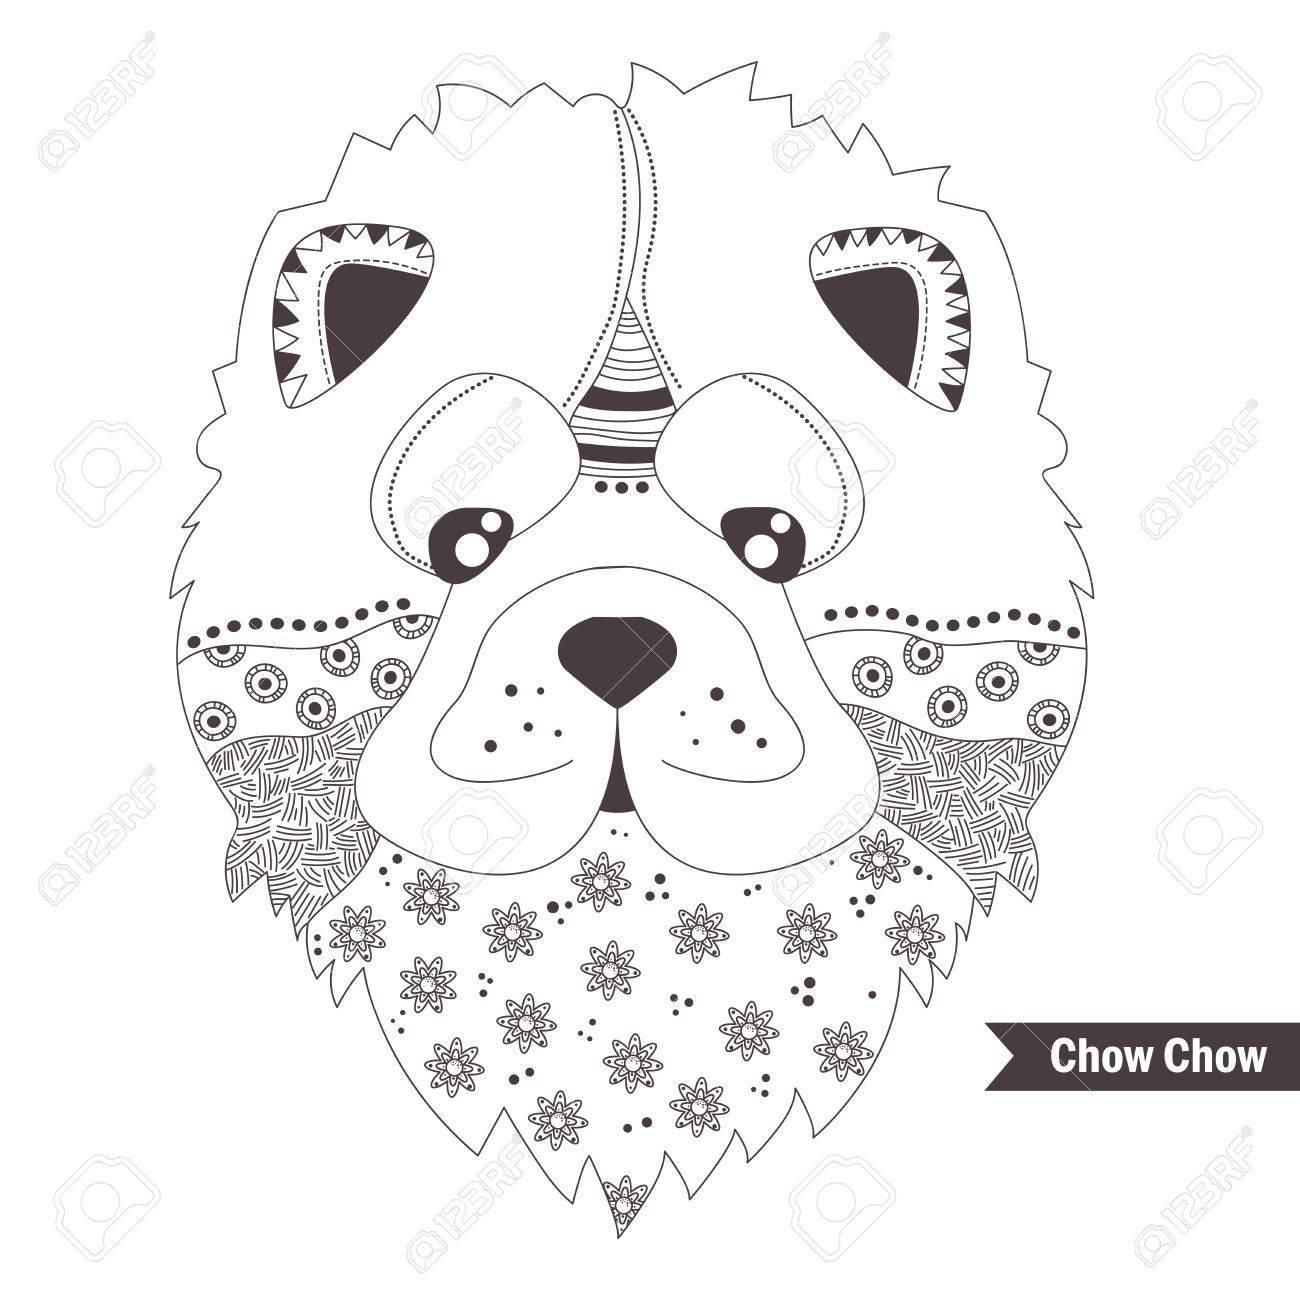 Chow Chow Dog. Coloring Book For Adult, Antistress Coloring Pages ...